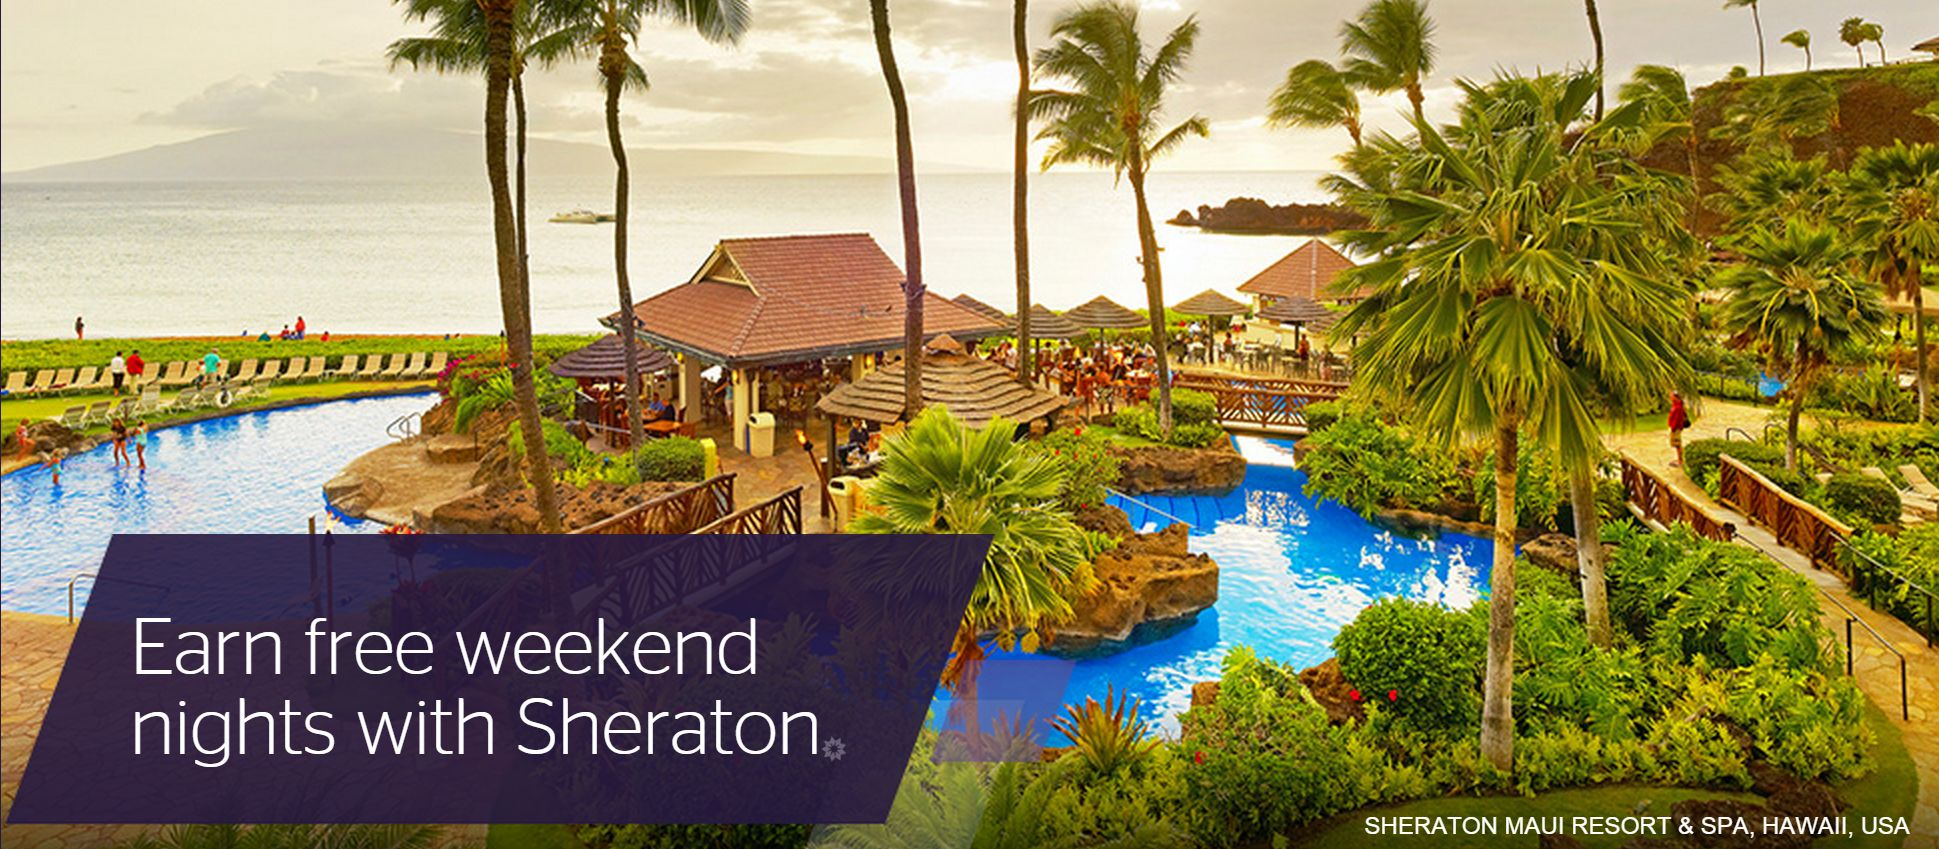 Earn free weekend nights with Sheraton